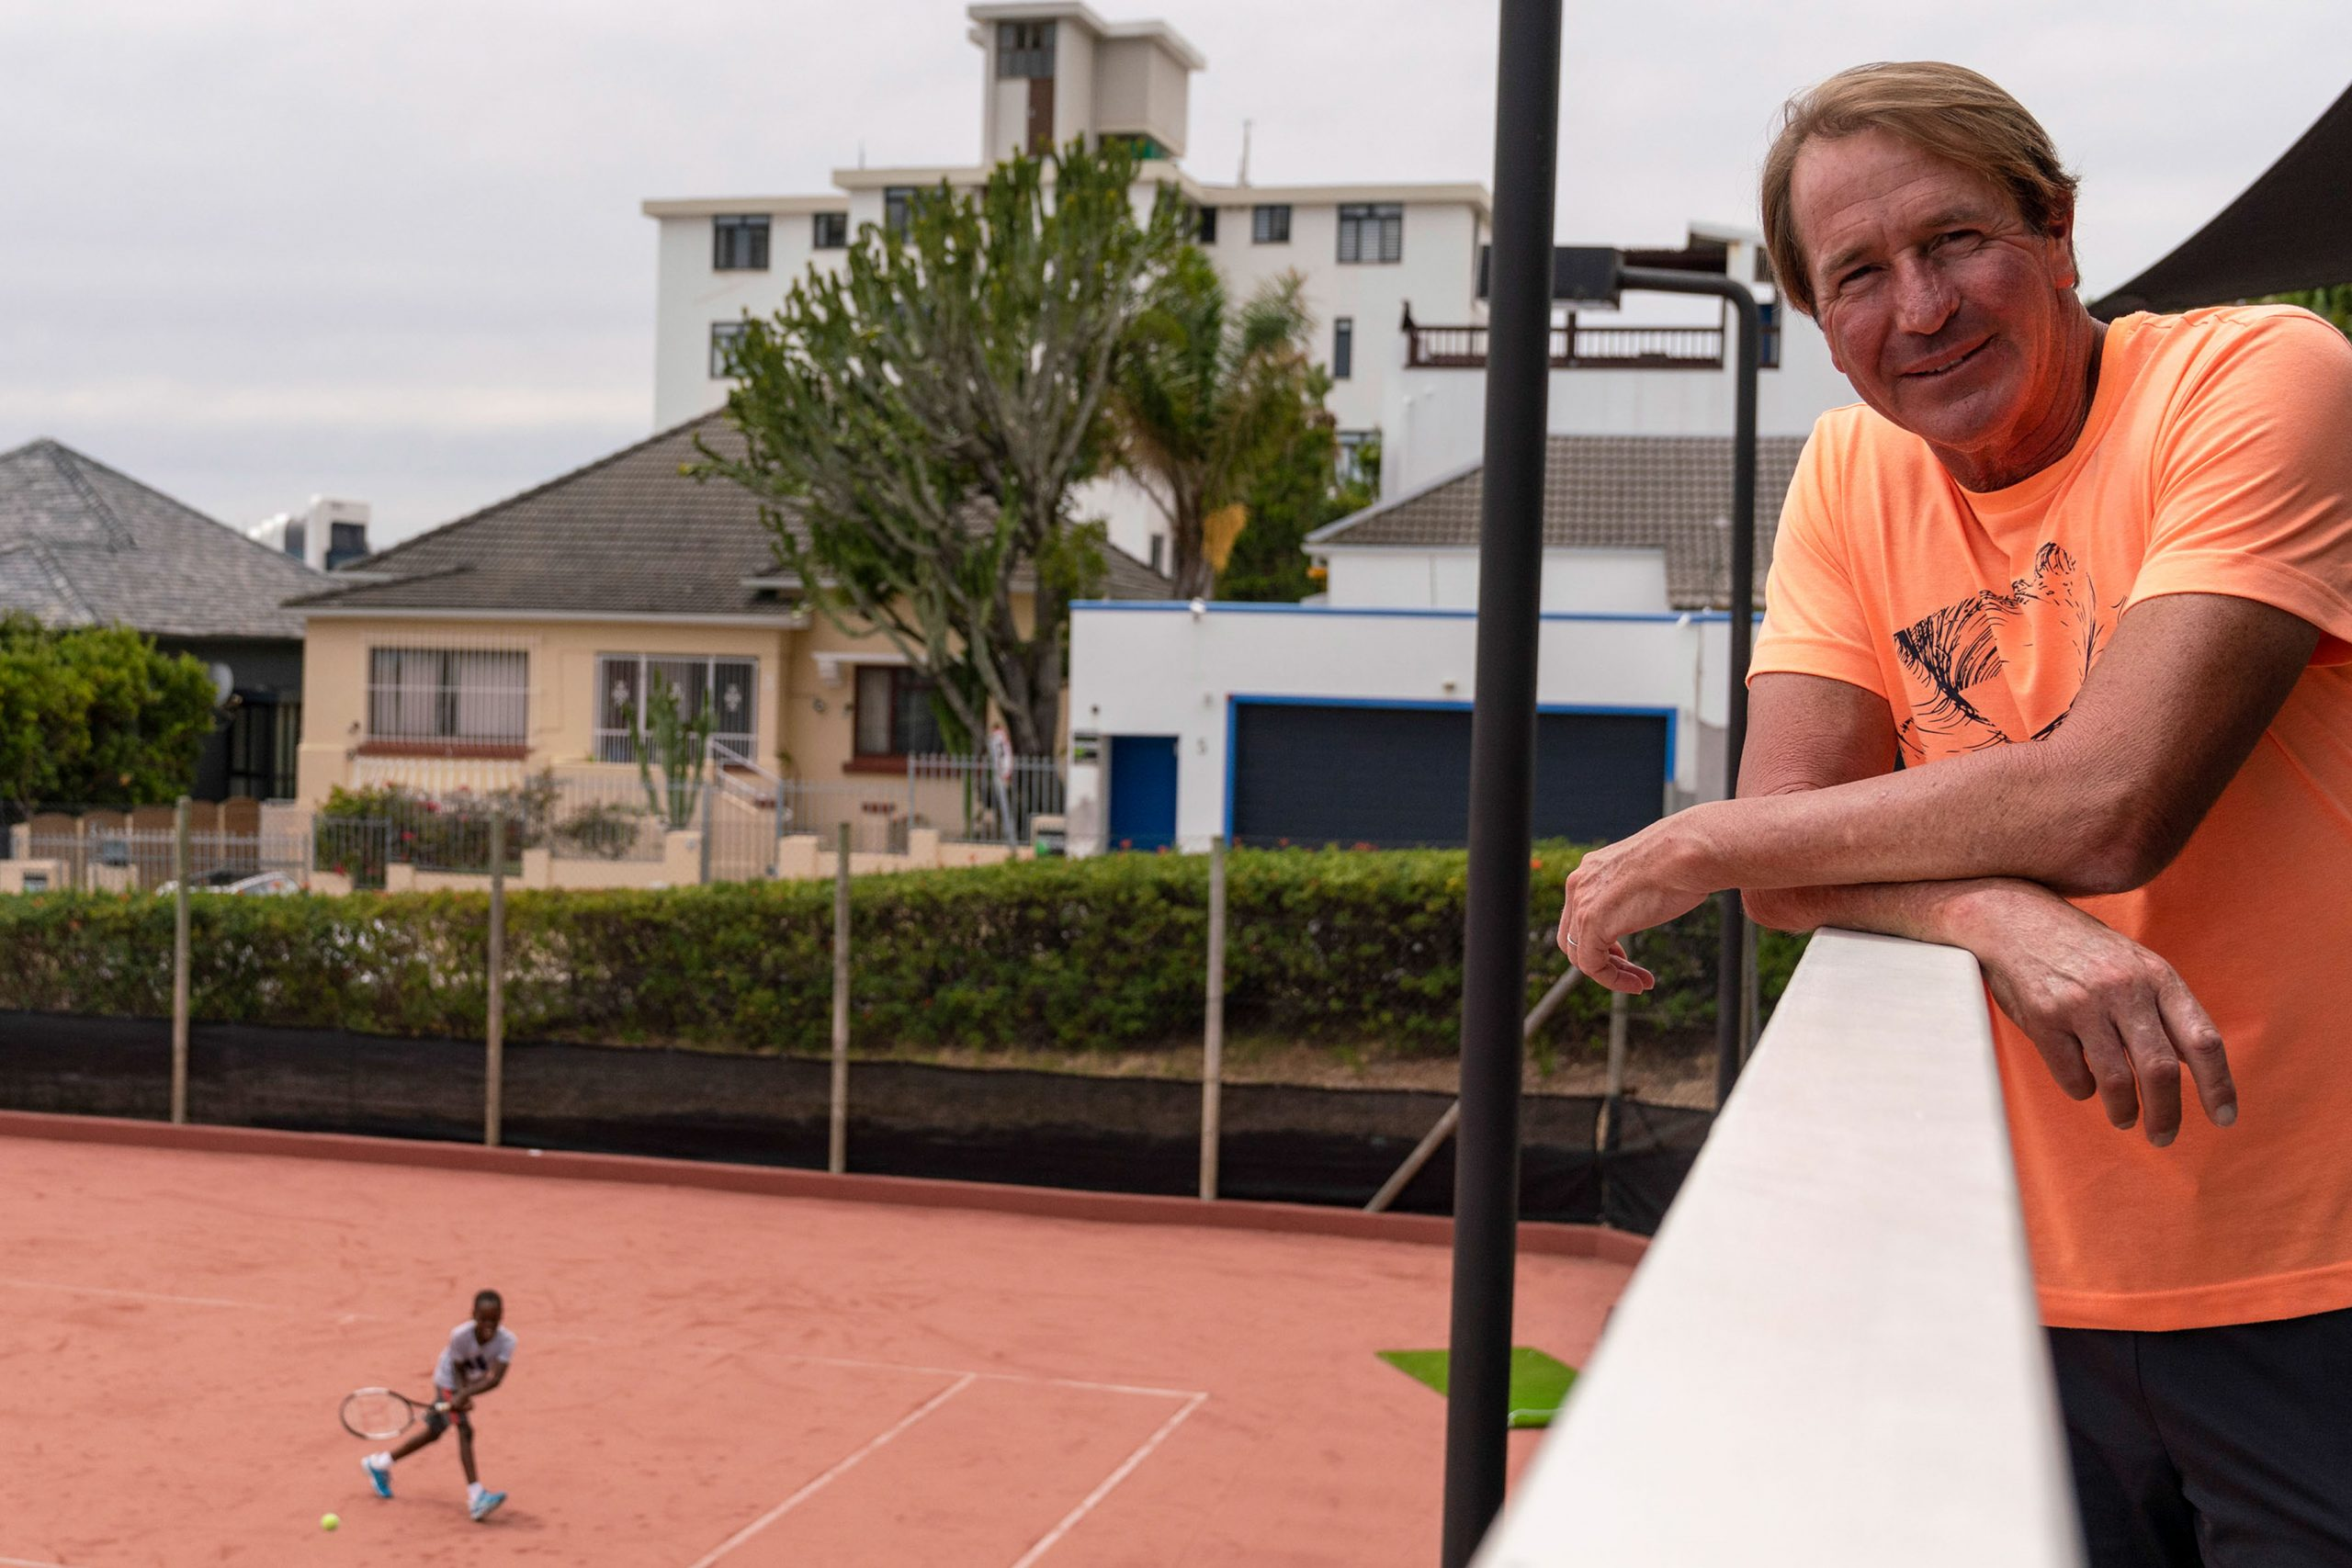 7 February 2020: Anthony Harris started the academy in 2012 with his wife, Dionne Harris, with the ultimate aim of producing a tennis champion from Africa. (Photograph by Ihsaan Haffejee)